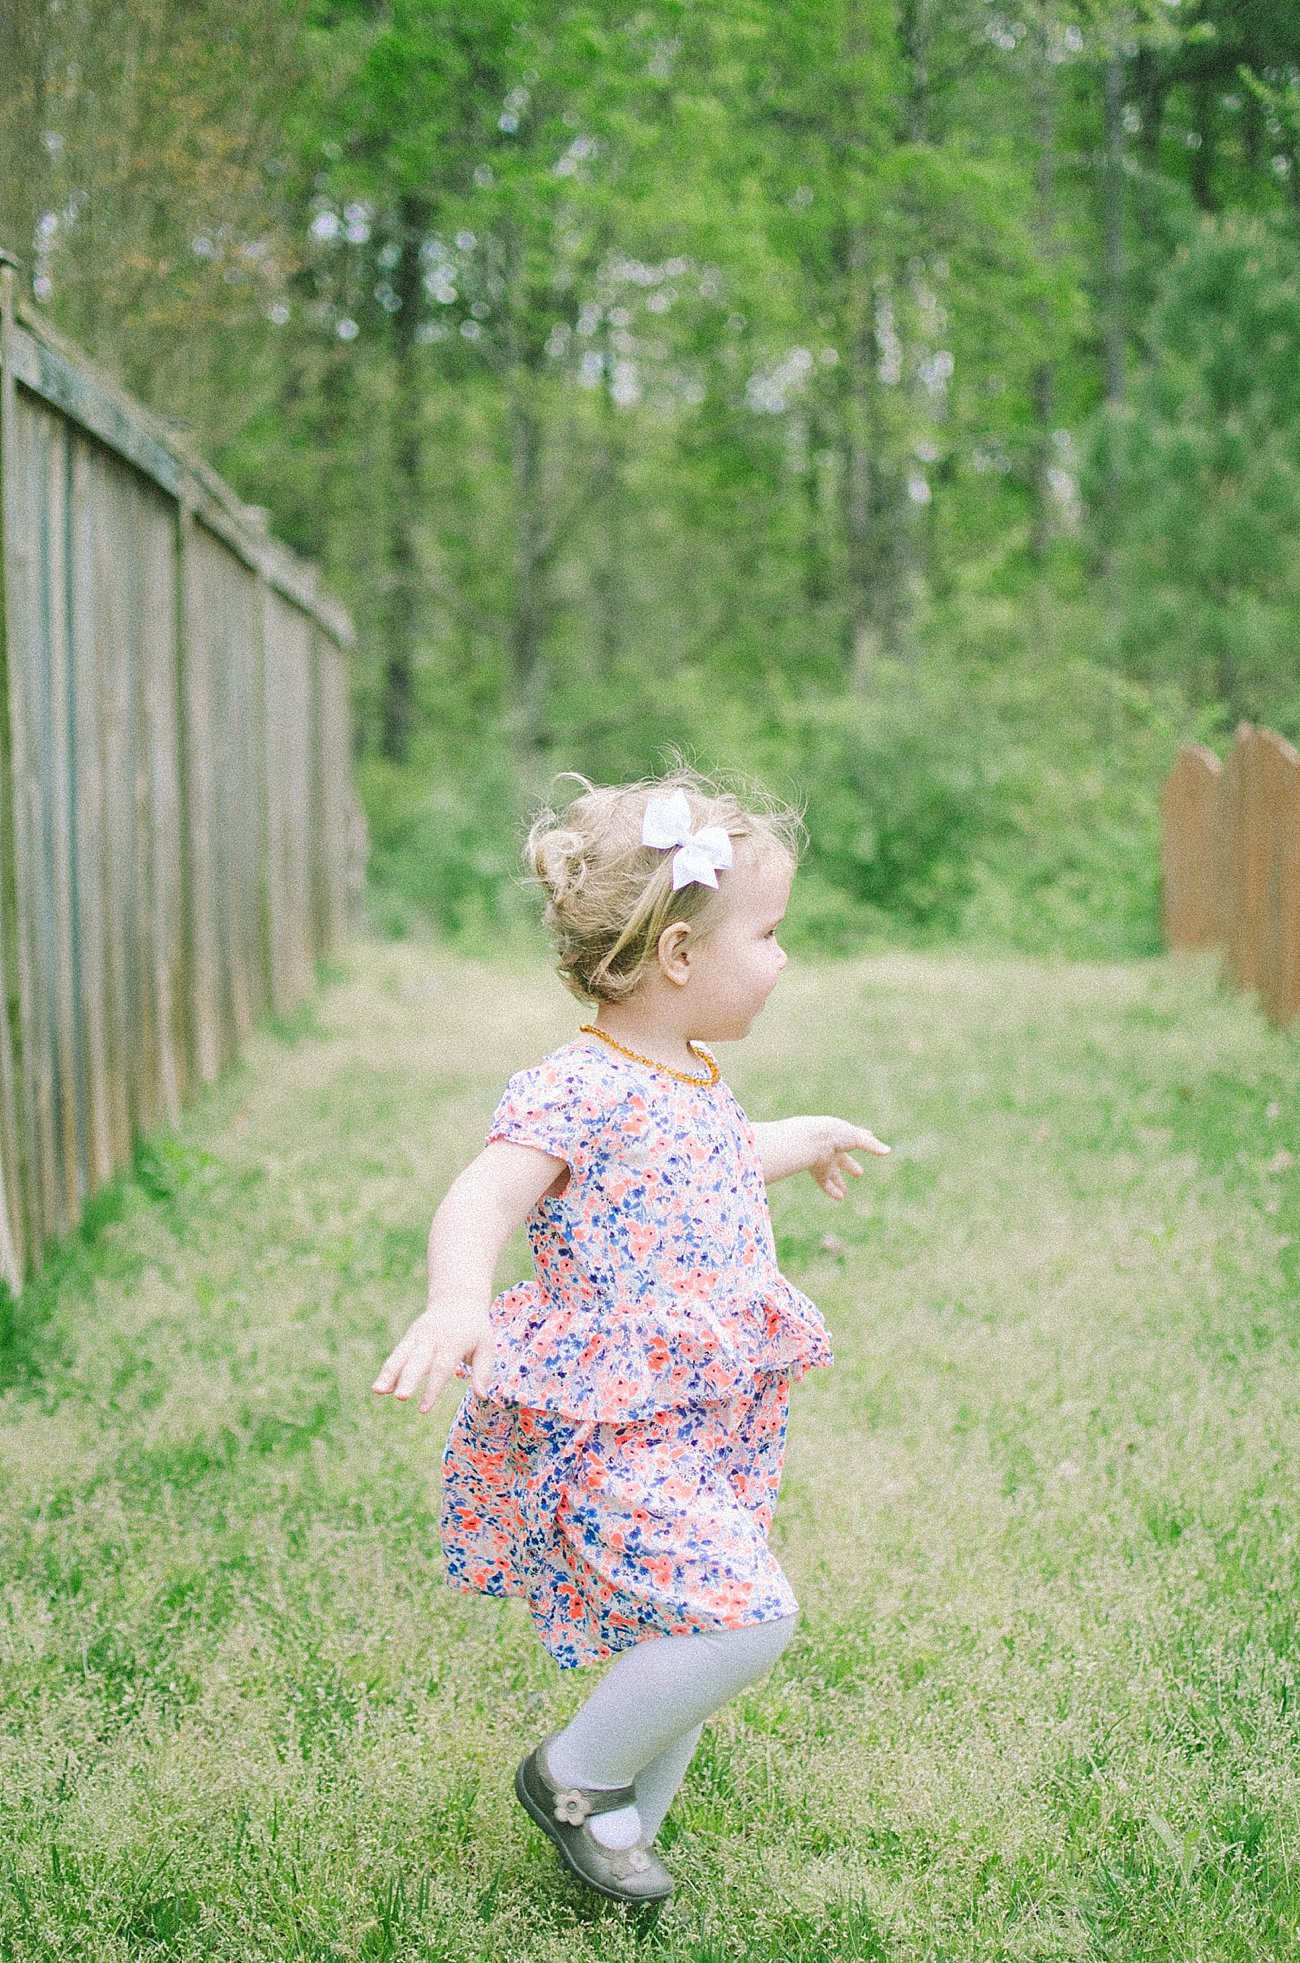 Osh Kosh Kids #BreakForSpring Kids and Baby Style (6)